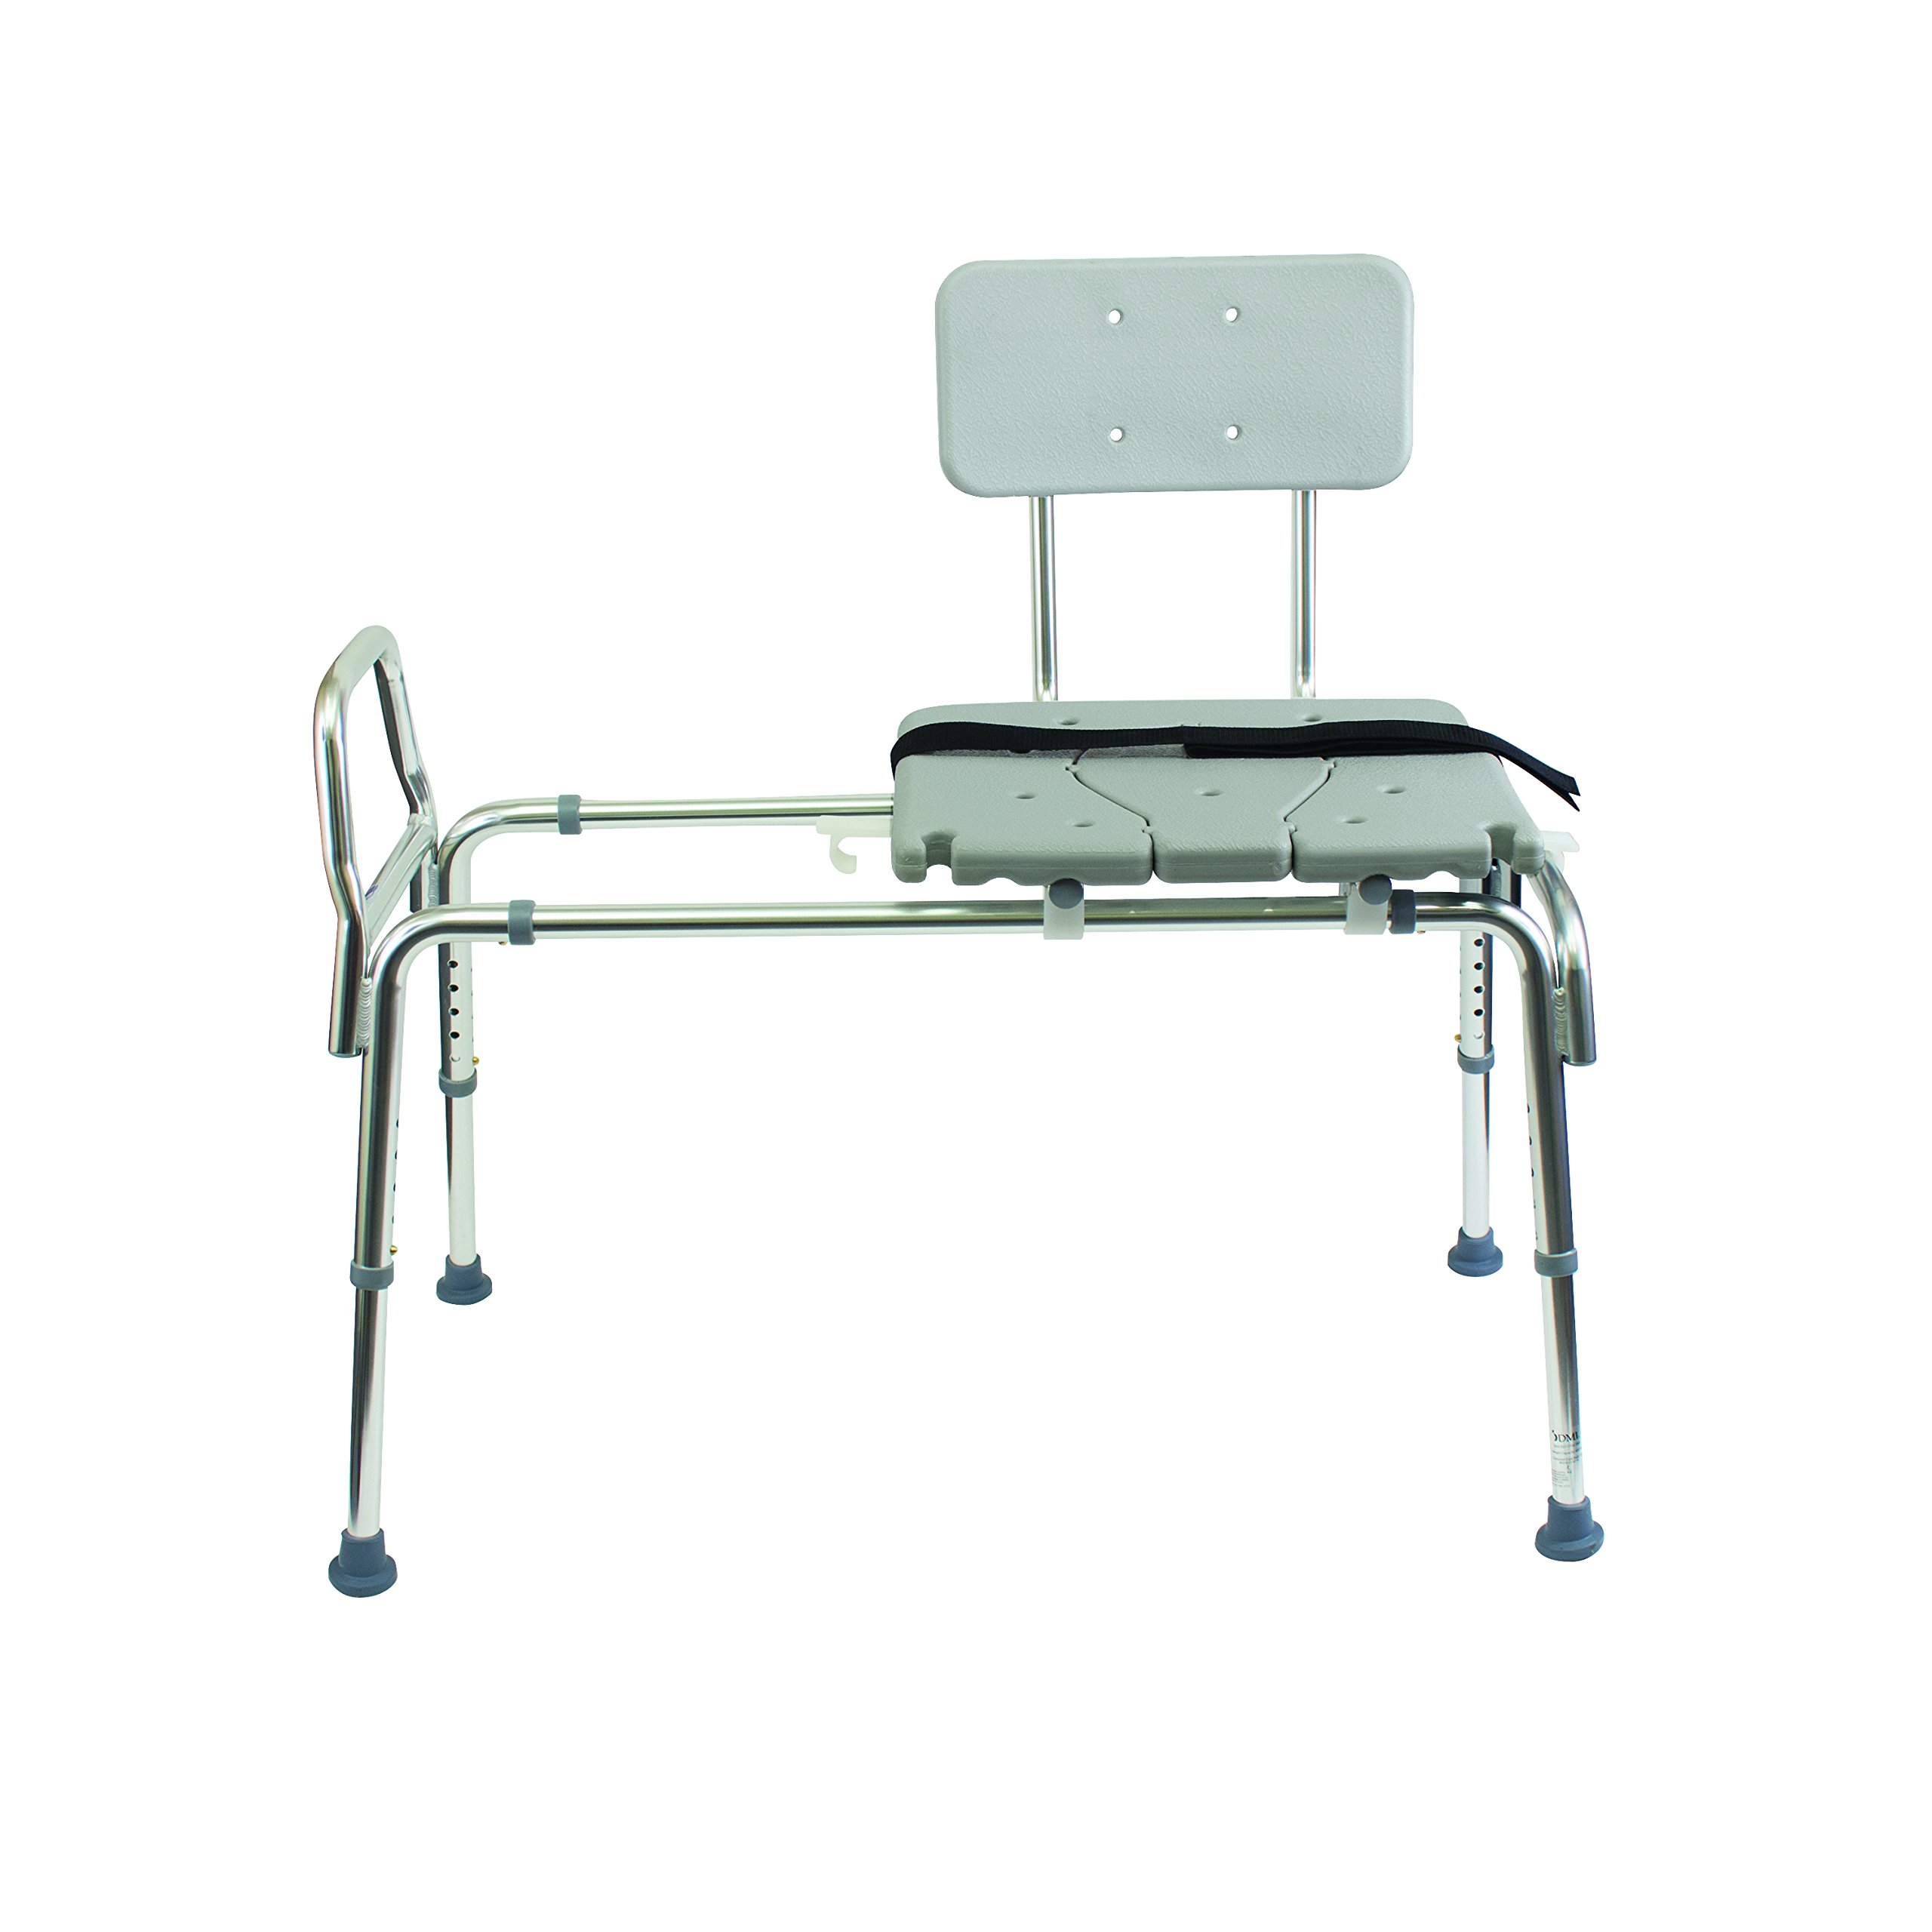 Duro Med Heavy Duty Sliding Transfer Bench Shower Chair